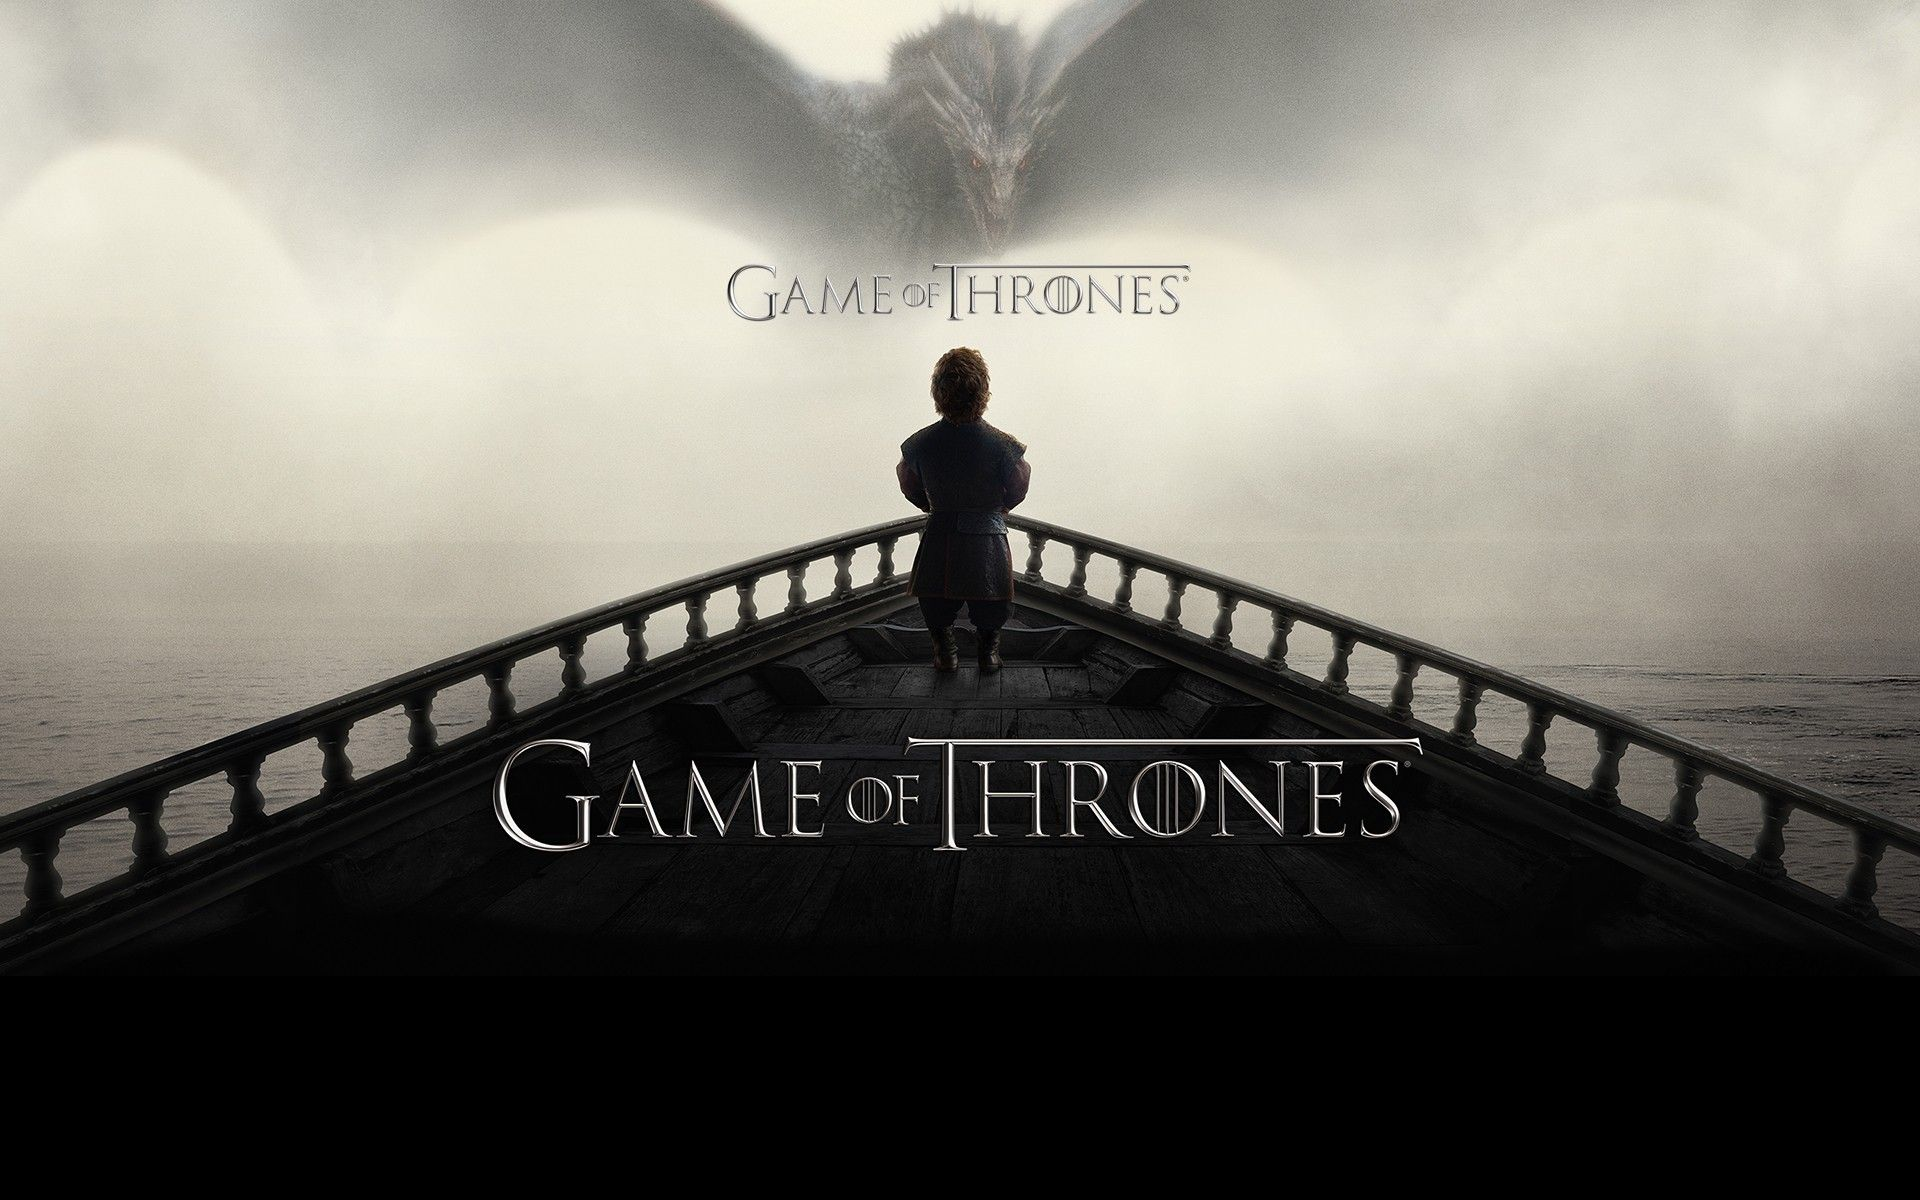 got wallpaper, game of thrones desktop